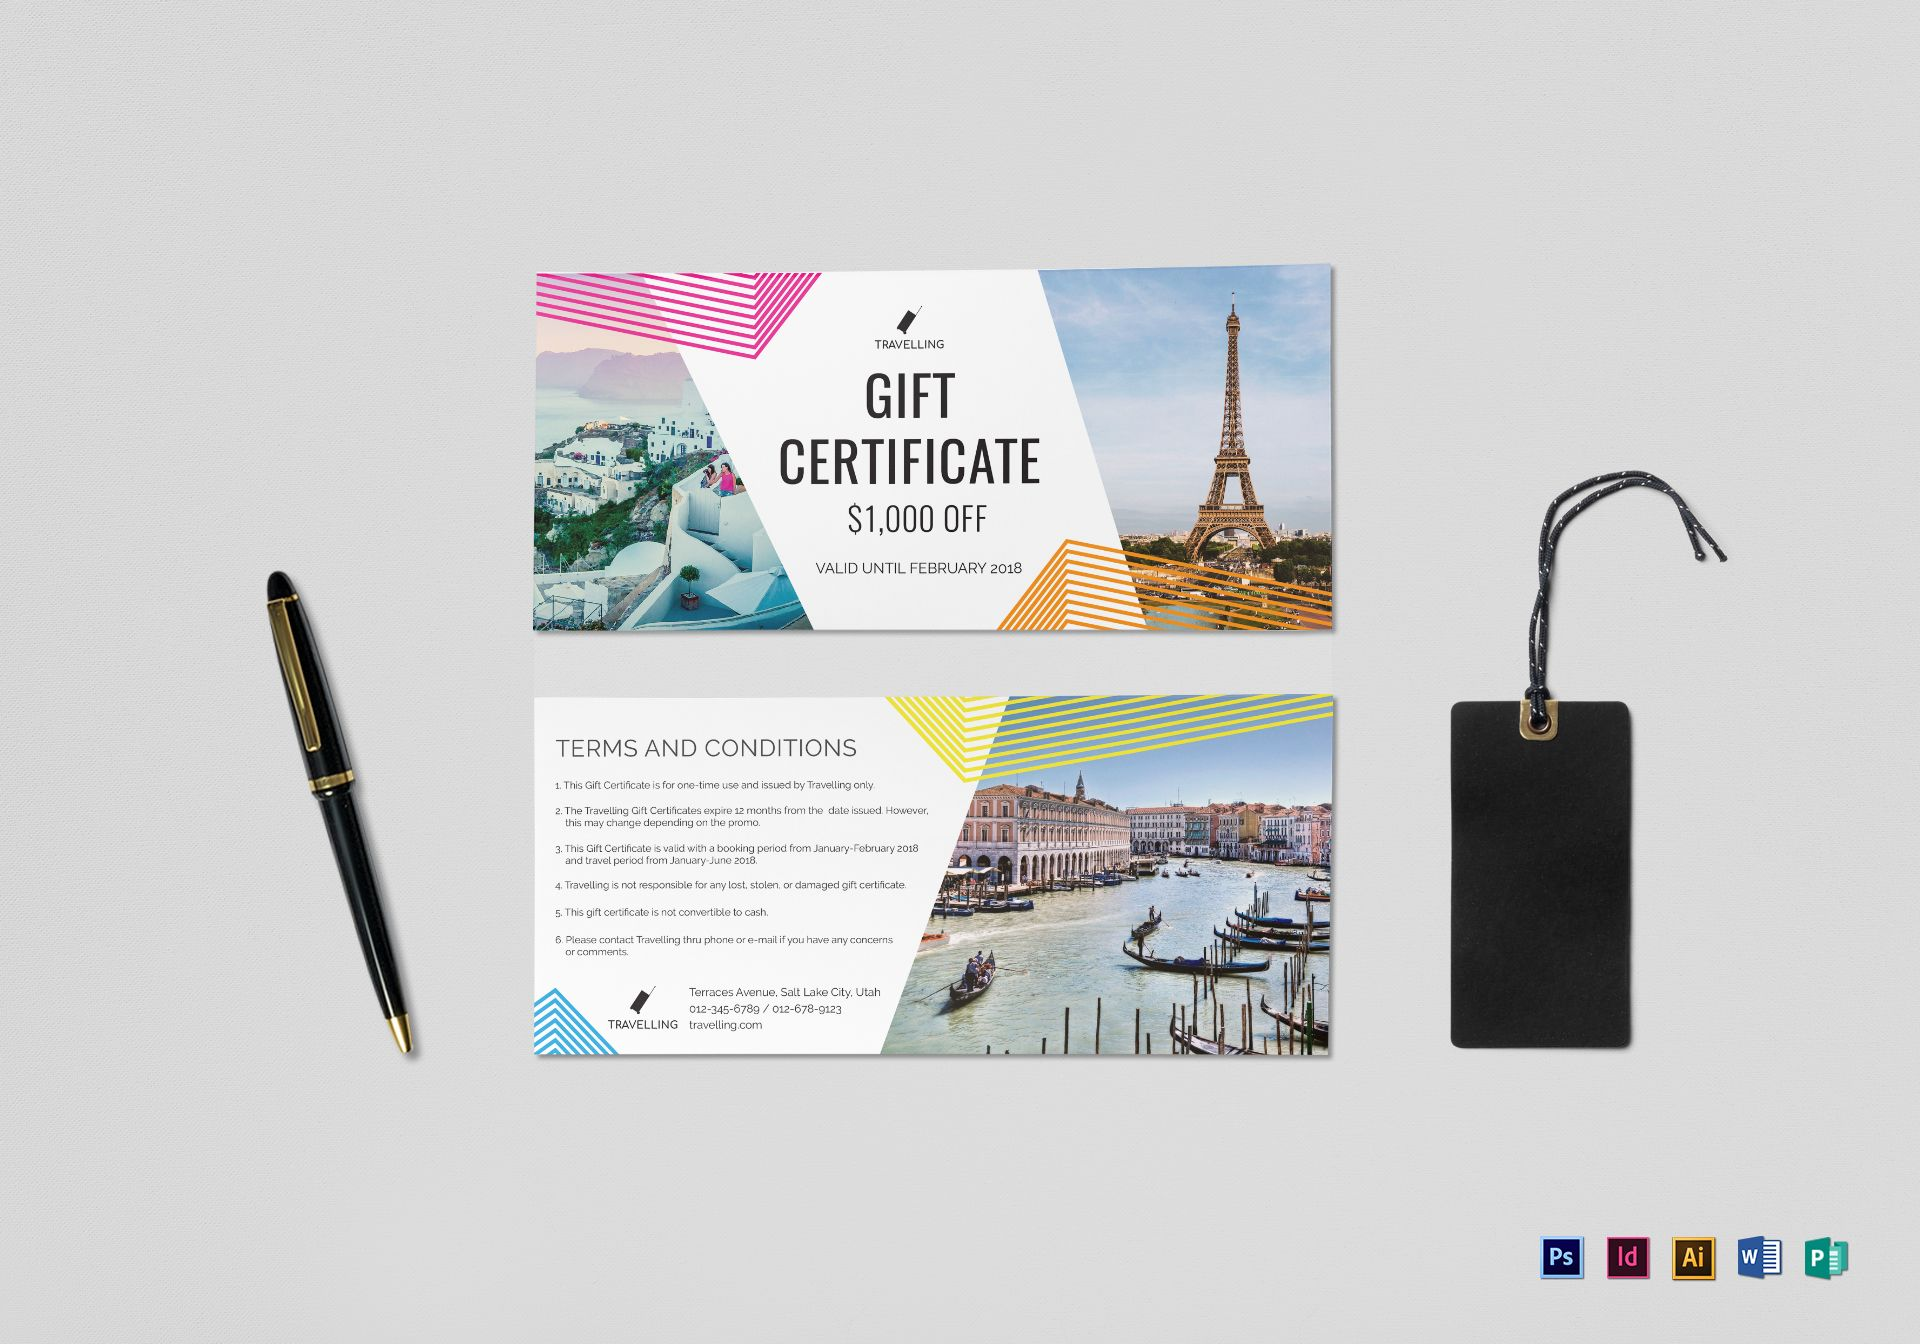 vacation gift certificate template - travel gift certificate design template in psd word